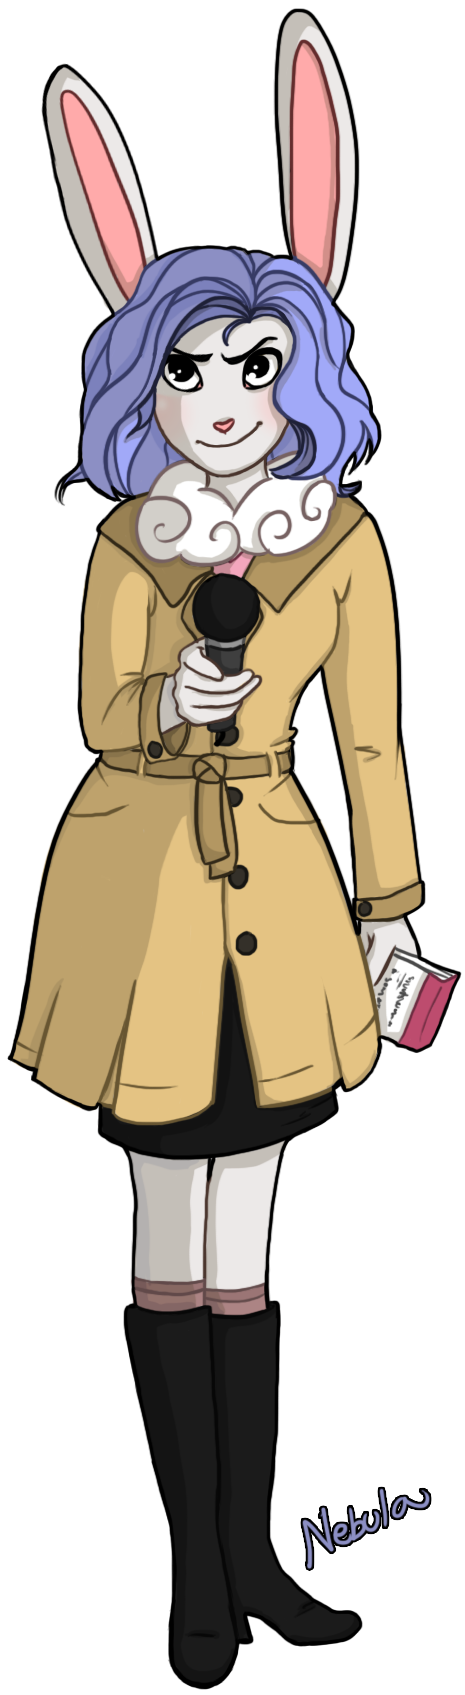 Jacket clipart trench coat. Orlitz got their homepage